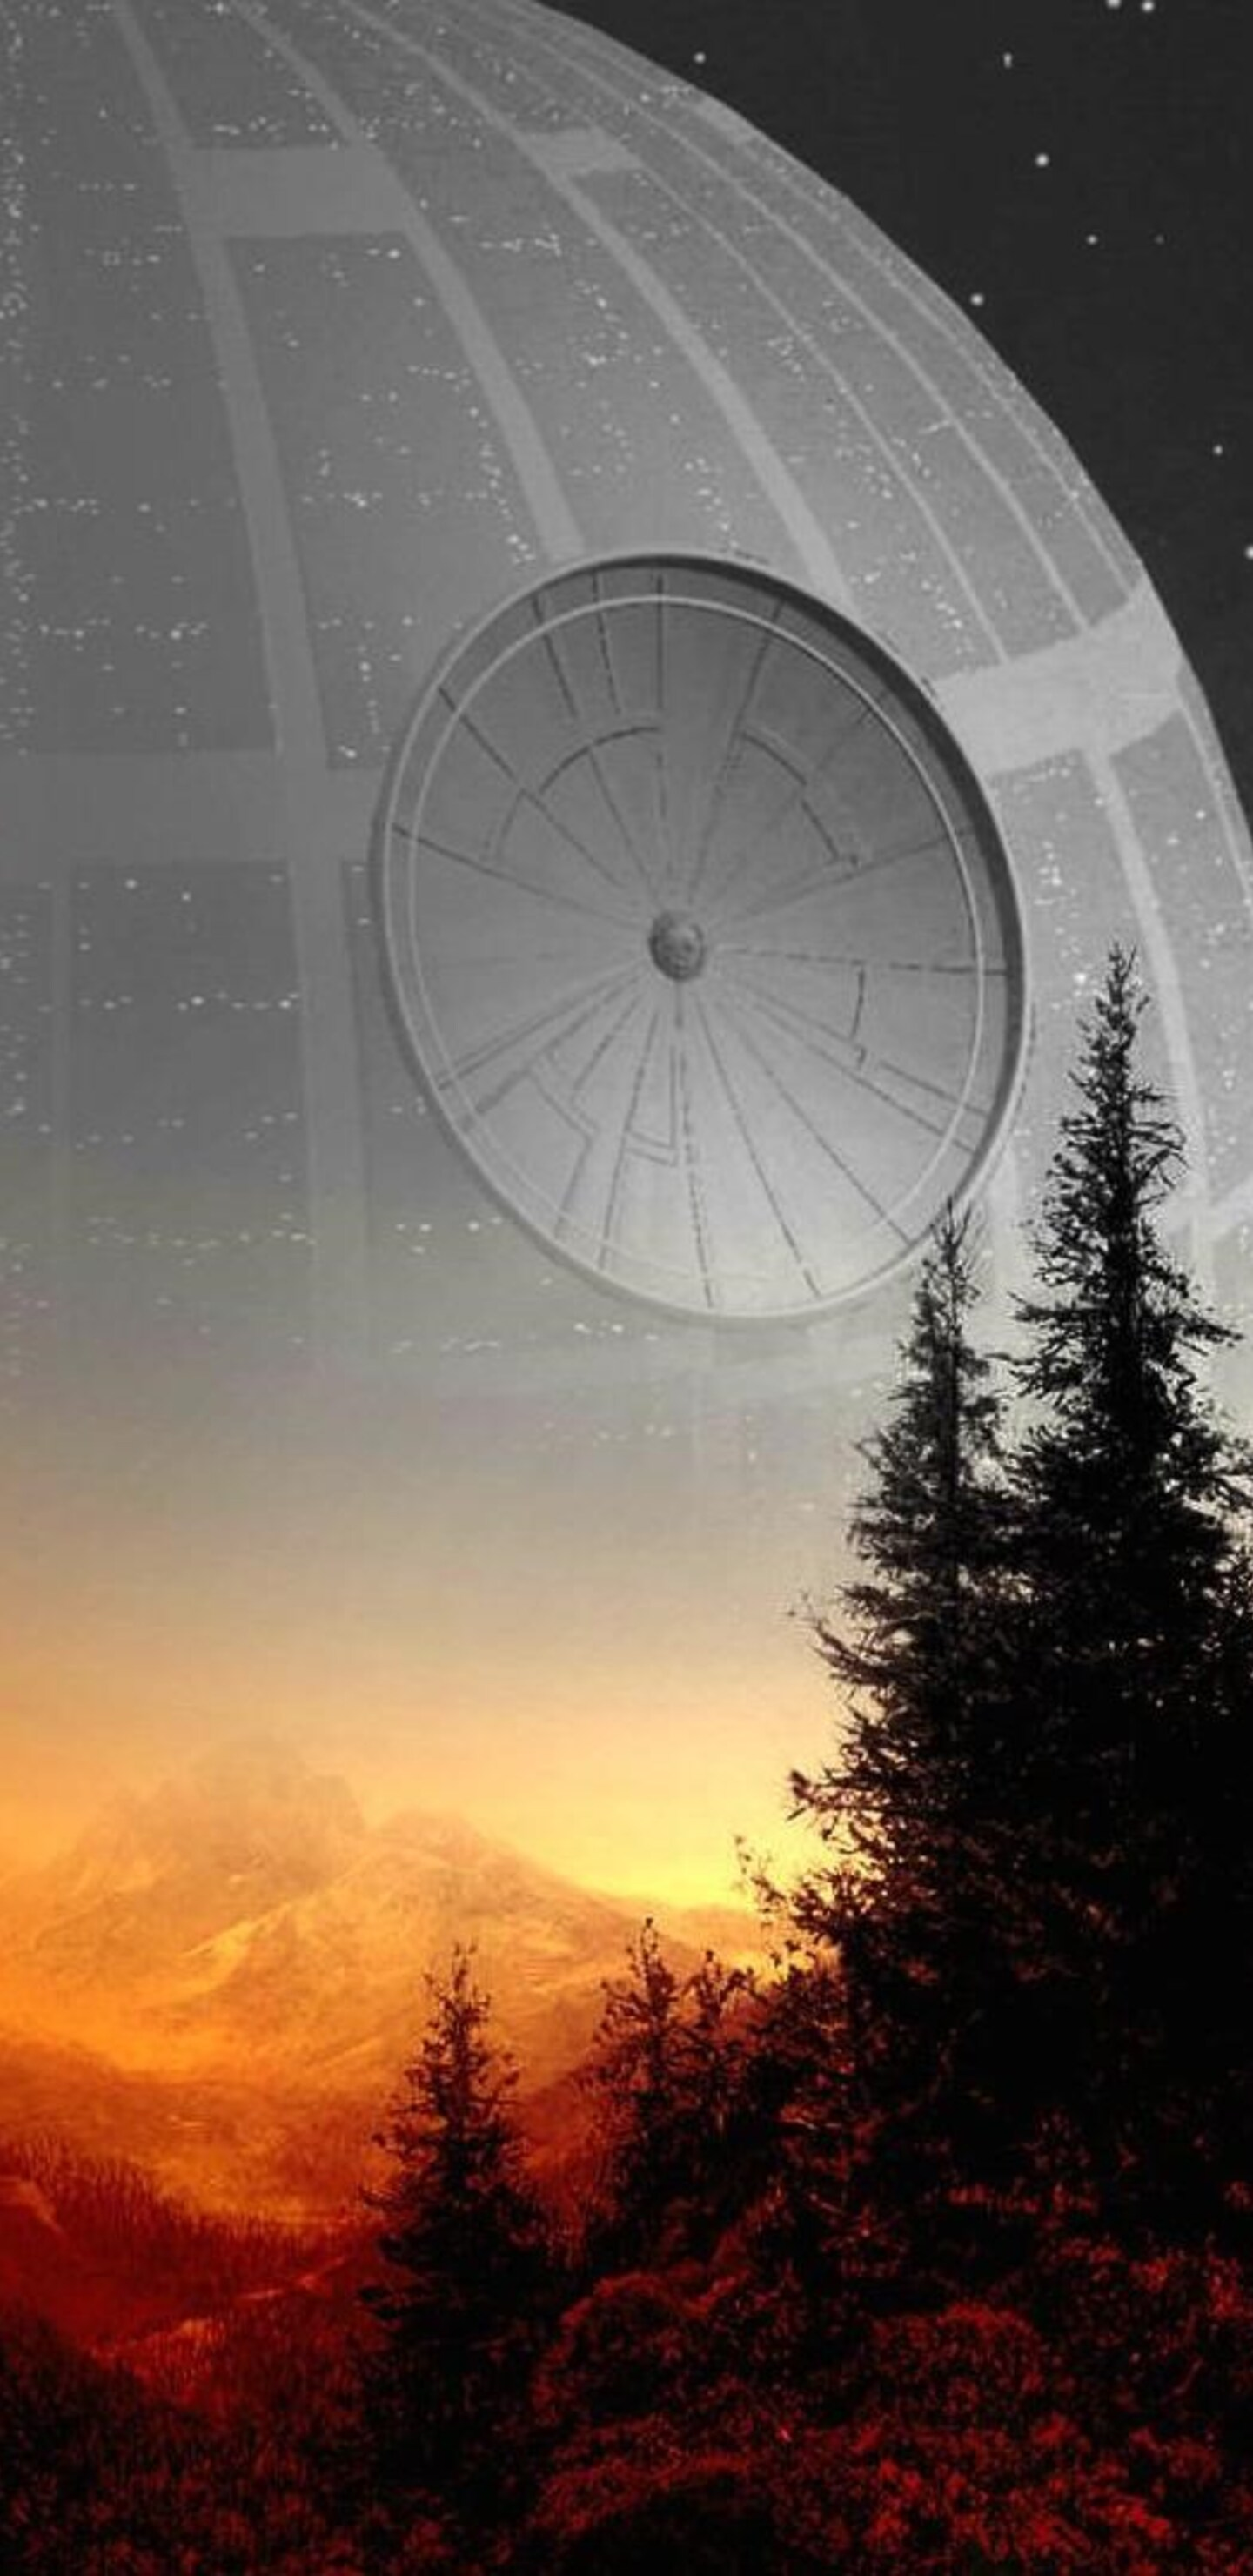 1440x2960 star wars rogue one anthology samsung galaxy note 9 8 s9 s8 s8 qhd hd 4k wallpapers - 3d wallpaper for note 8 ...